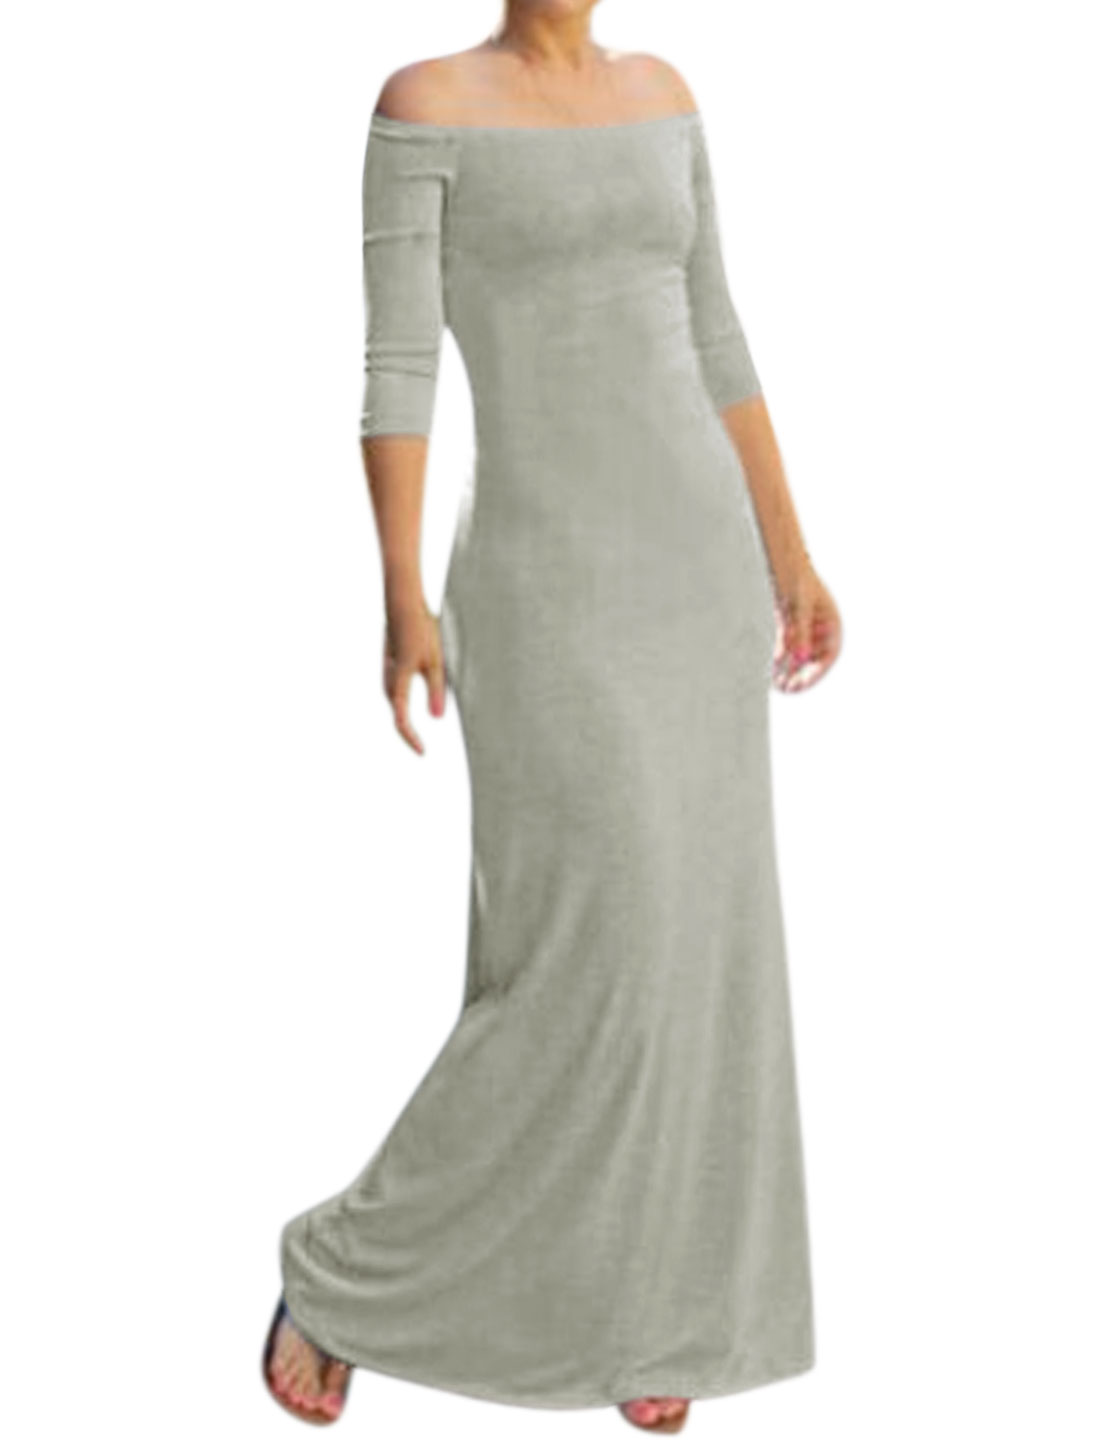 Women Off Shoulder 3/4 Sleeve Full Length Sheath Dress Gray M